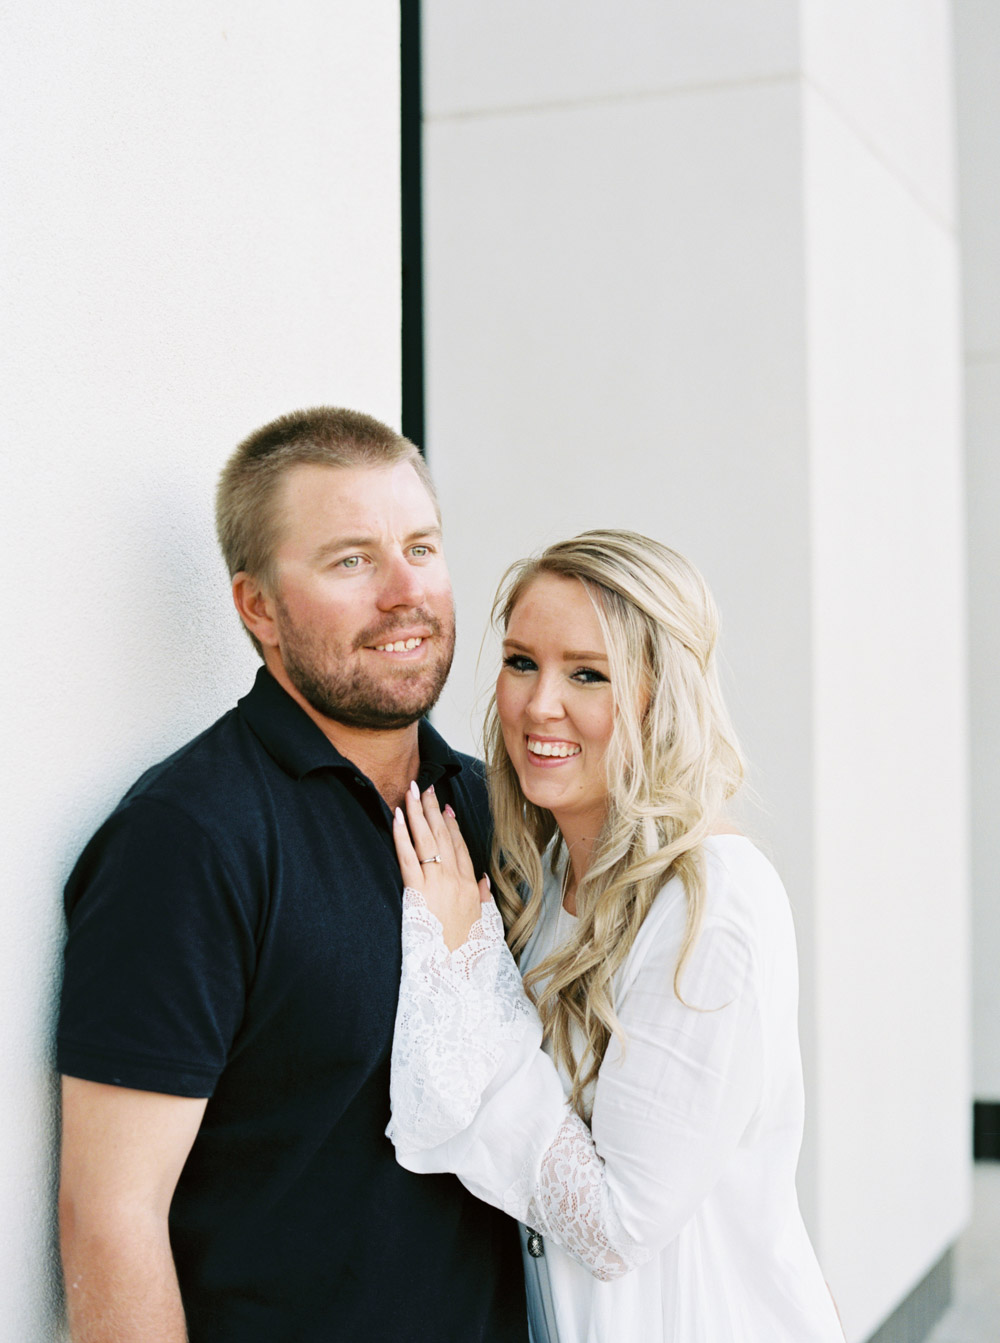 Australia NSW Wedding Photographer -- Park Engagement Photos -- Wedding Blog - The Overwhelmed Bride